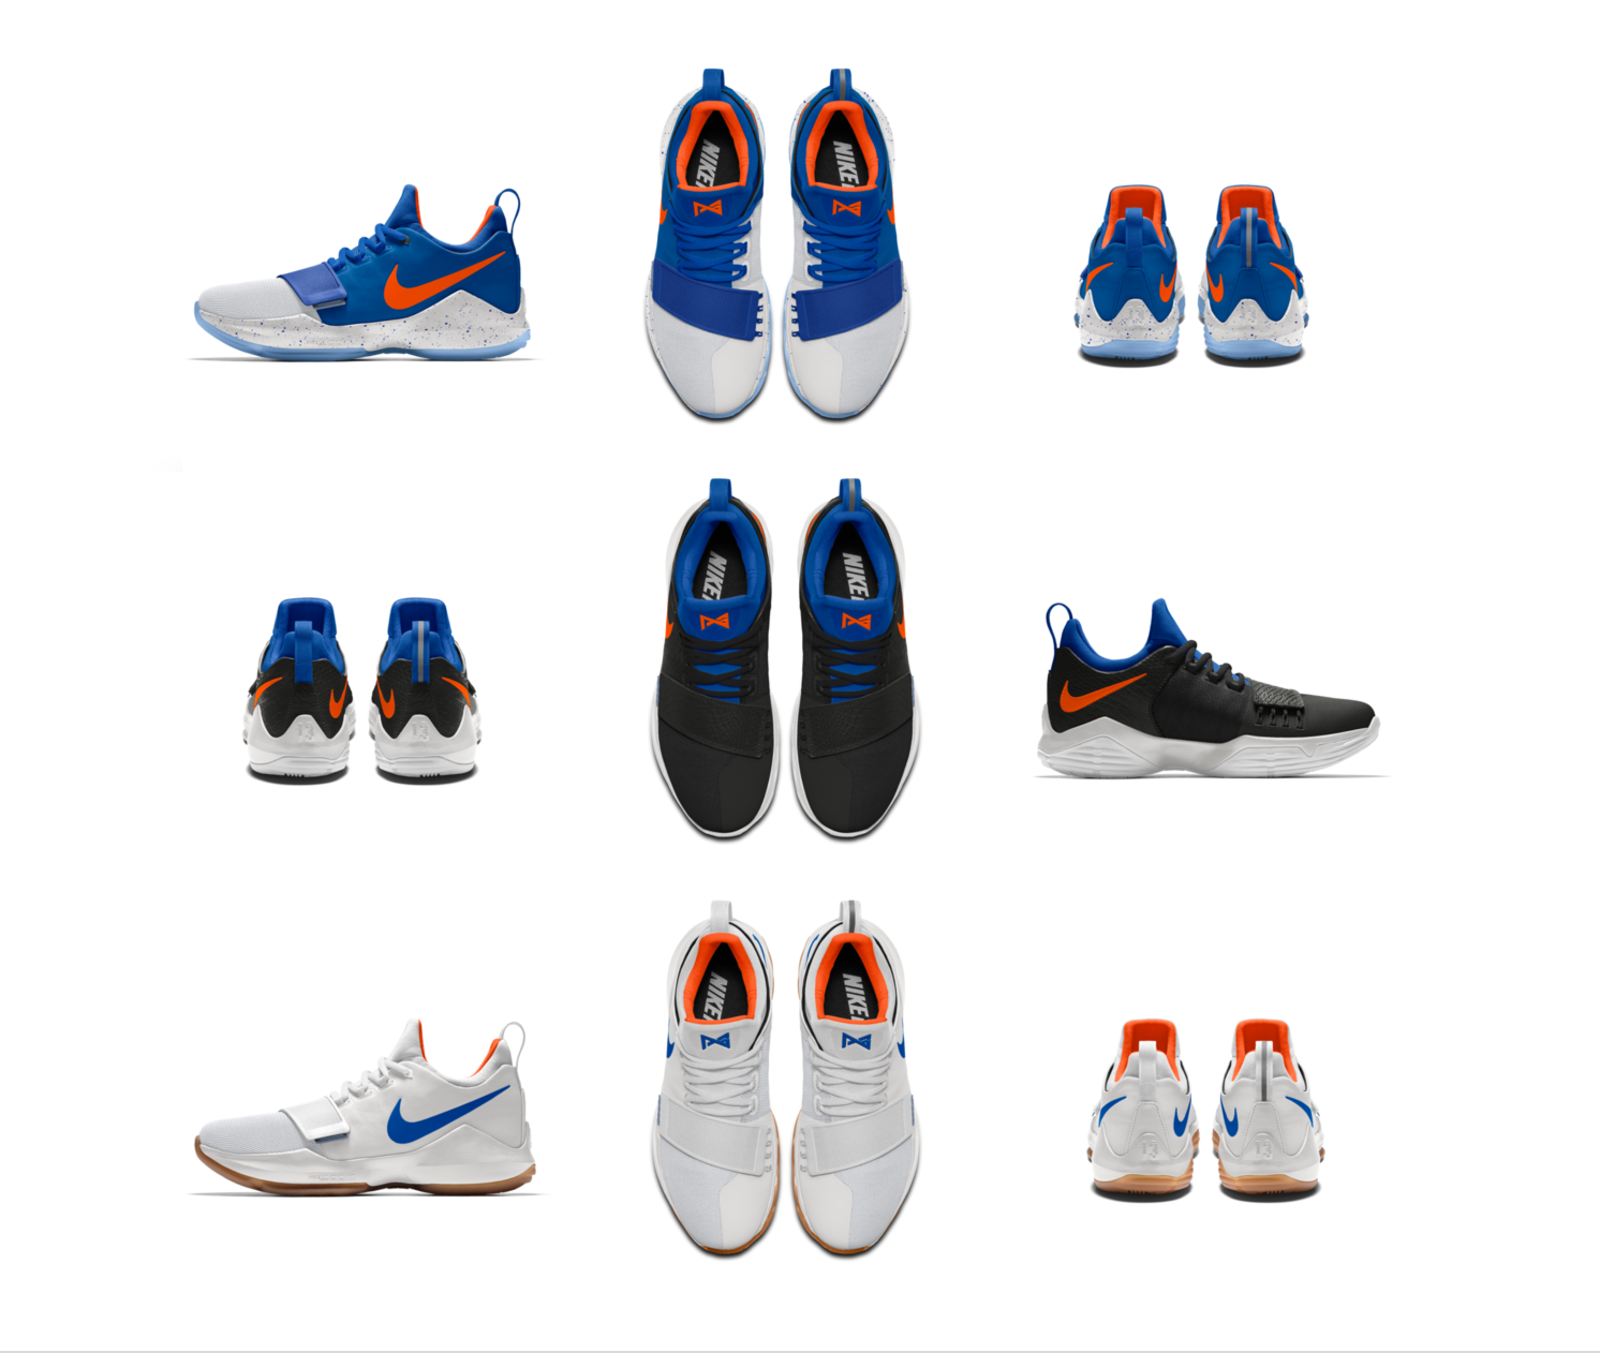 timeless design 0914e 3c687 Customize the PG1 as Paul George Officially Joins OKC - Nike ...